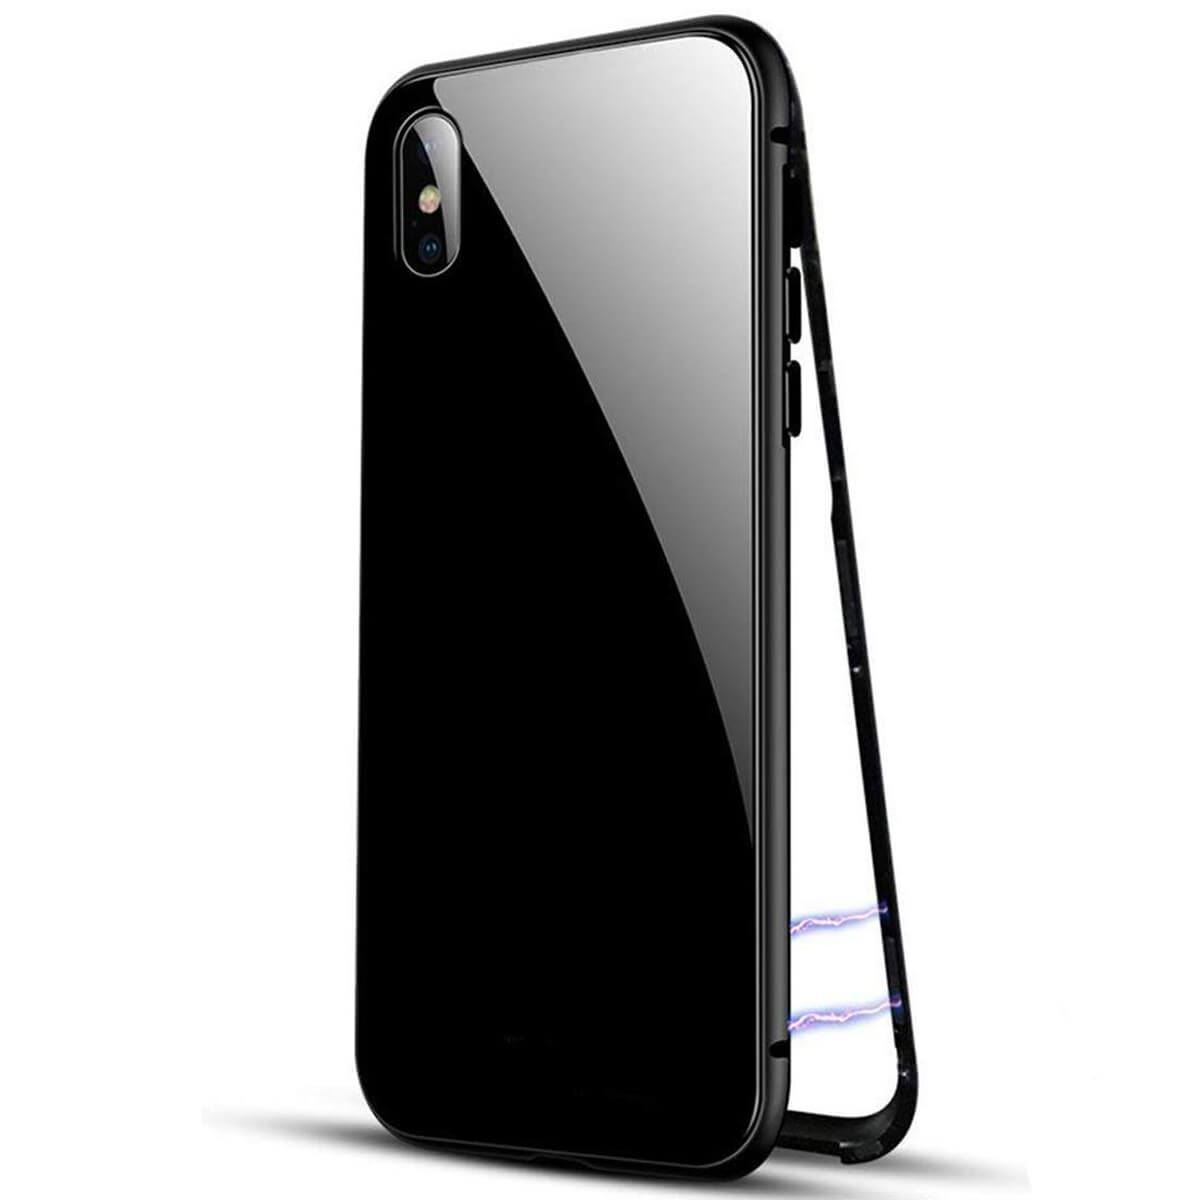 Metal-Magnetic-Adsorption-Case-For-iPhone-X-8-7-6s-6-Luxury-Tempered-Glass-Cover thumbnail 5